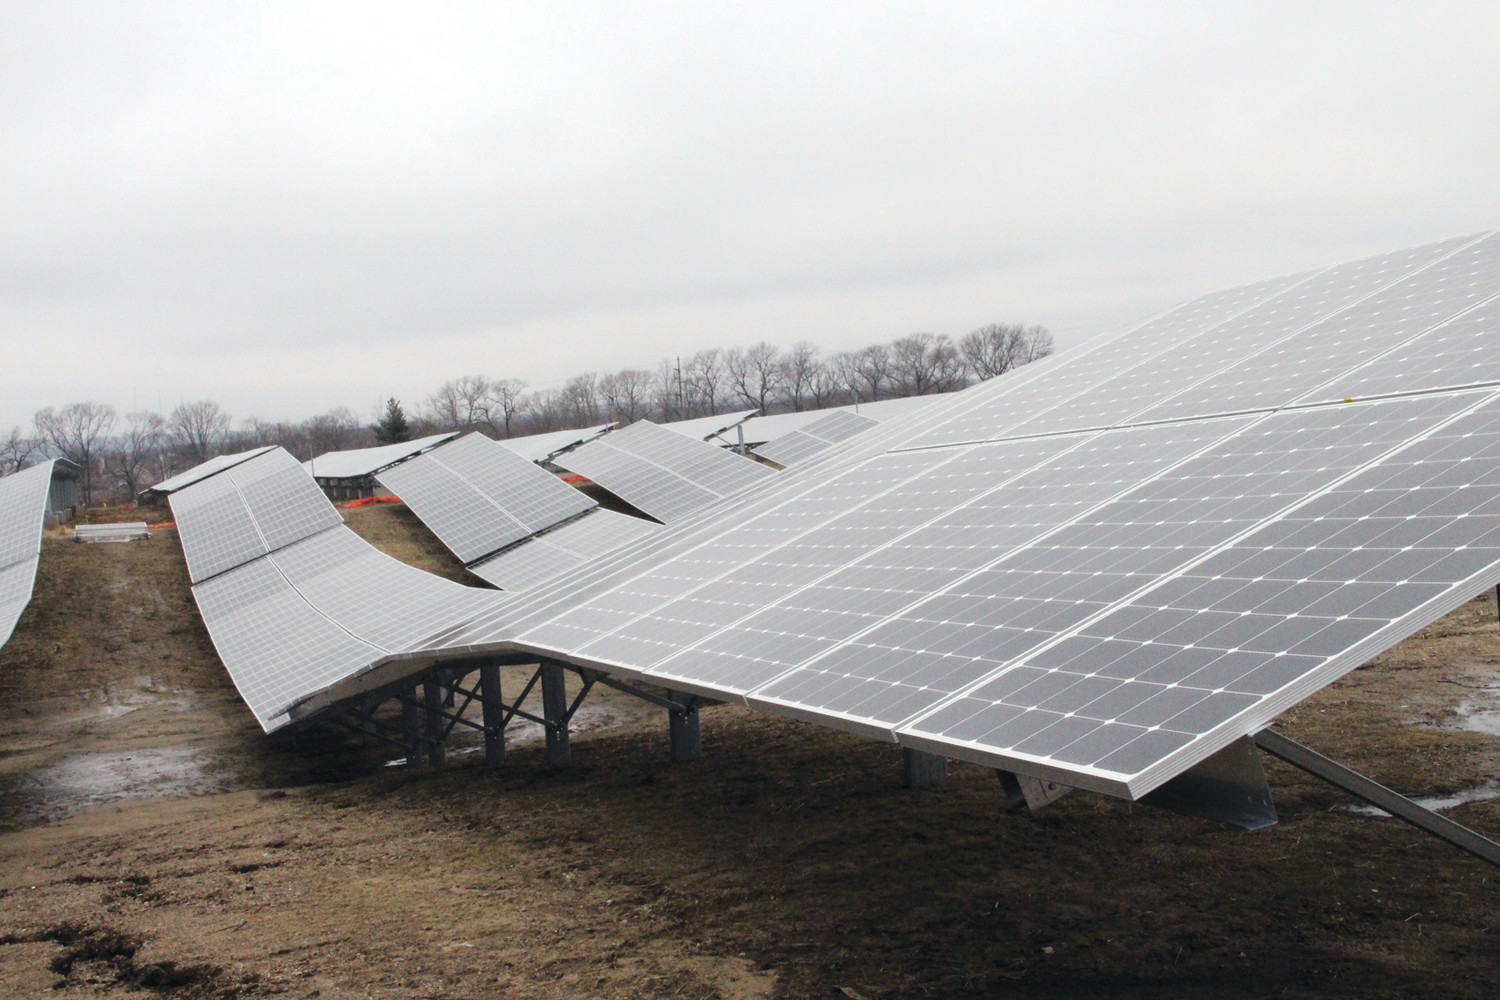 THE FUTURE: These types of solar panels, from a picture taken at the new solar farm across from T.F. Green Airport in Warwick, represent a new type of growth happening in Western Cranston.